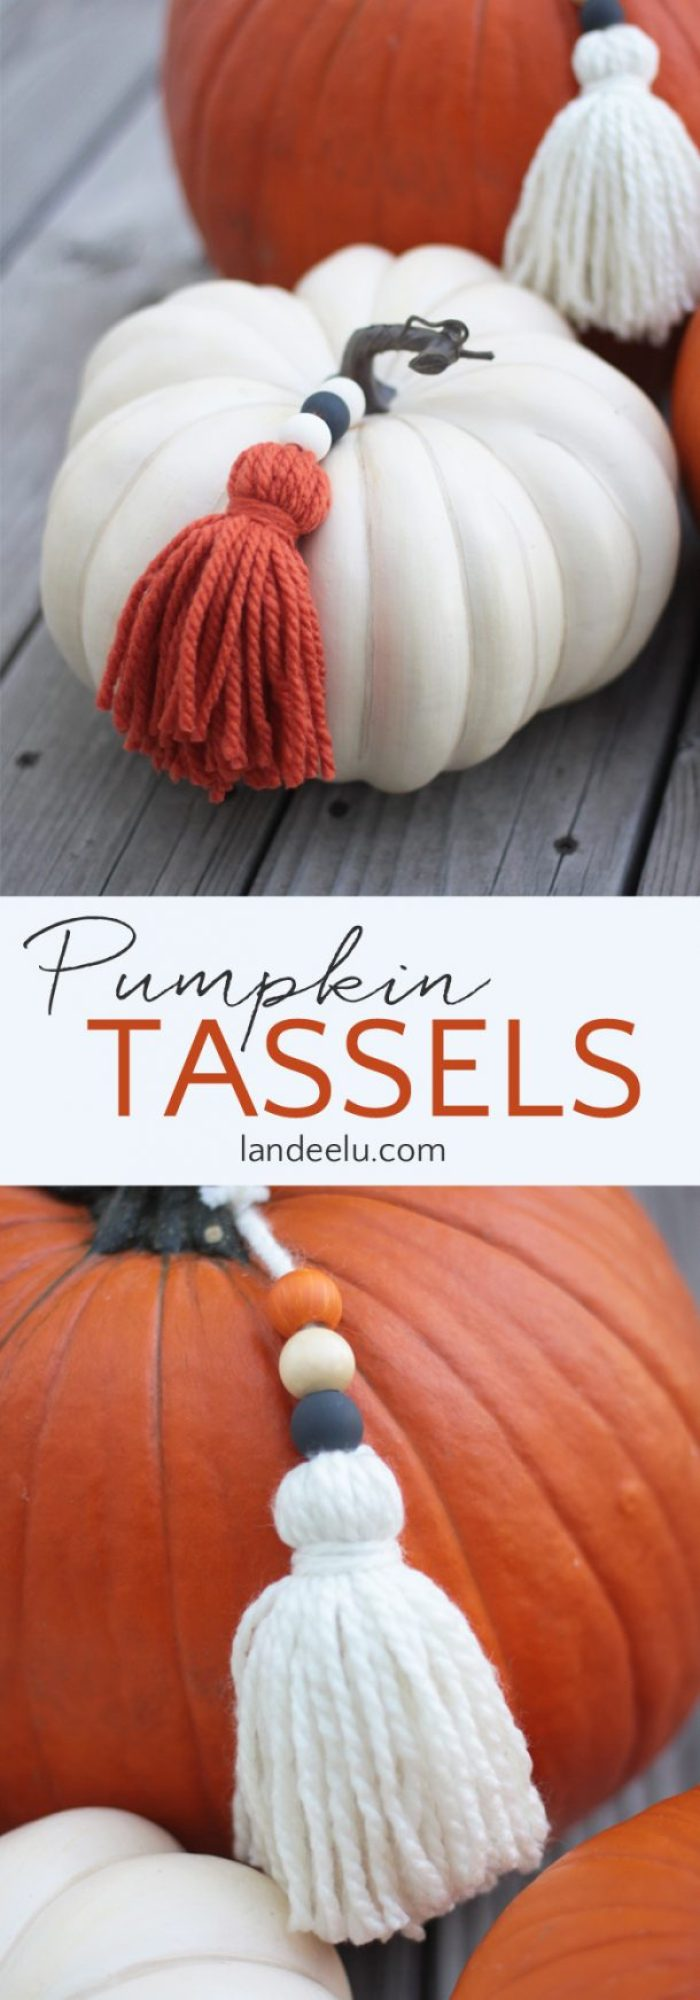 DIY Pumpkin Yarn Tassels Tutorial | Landeelu - Add a fun detail to your fall pumpkins with DIY yarn tassels!